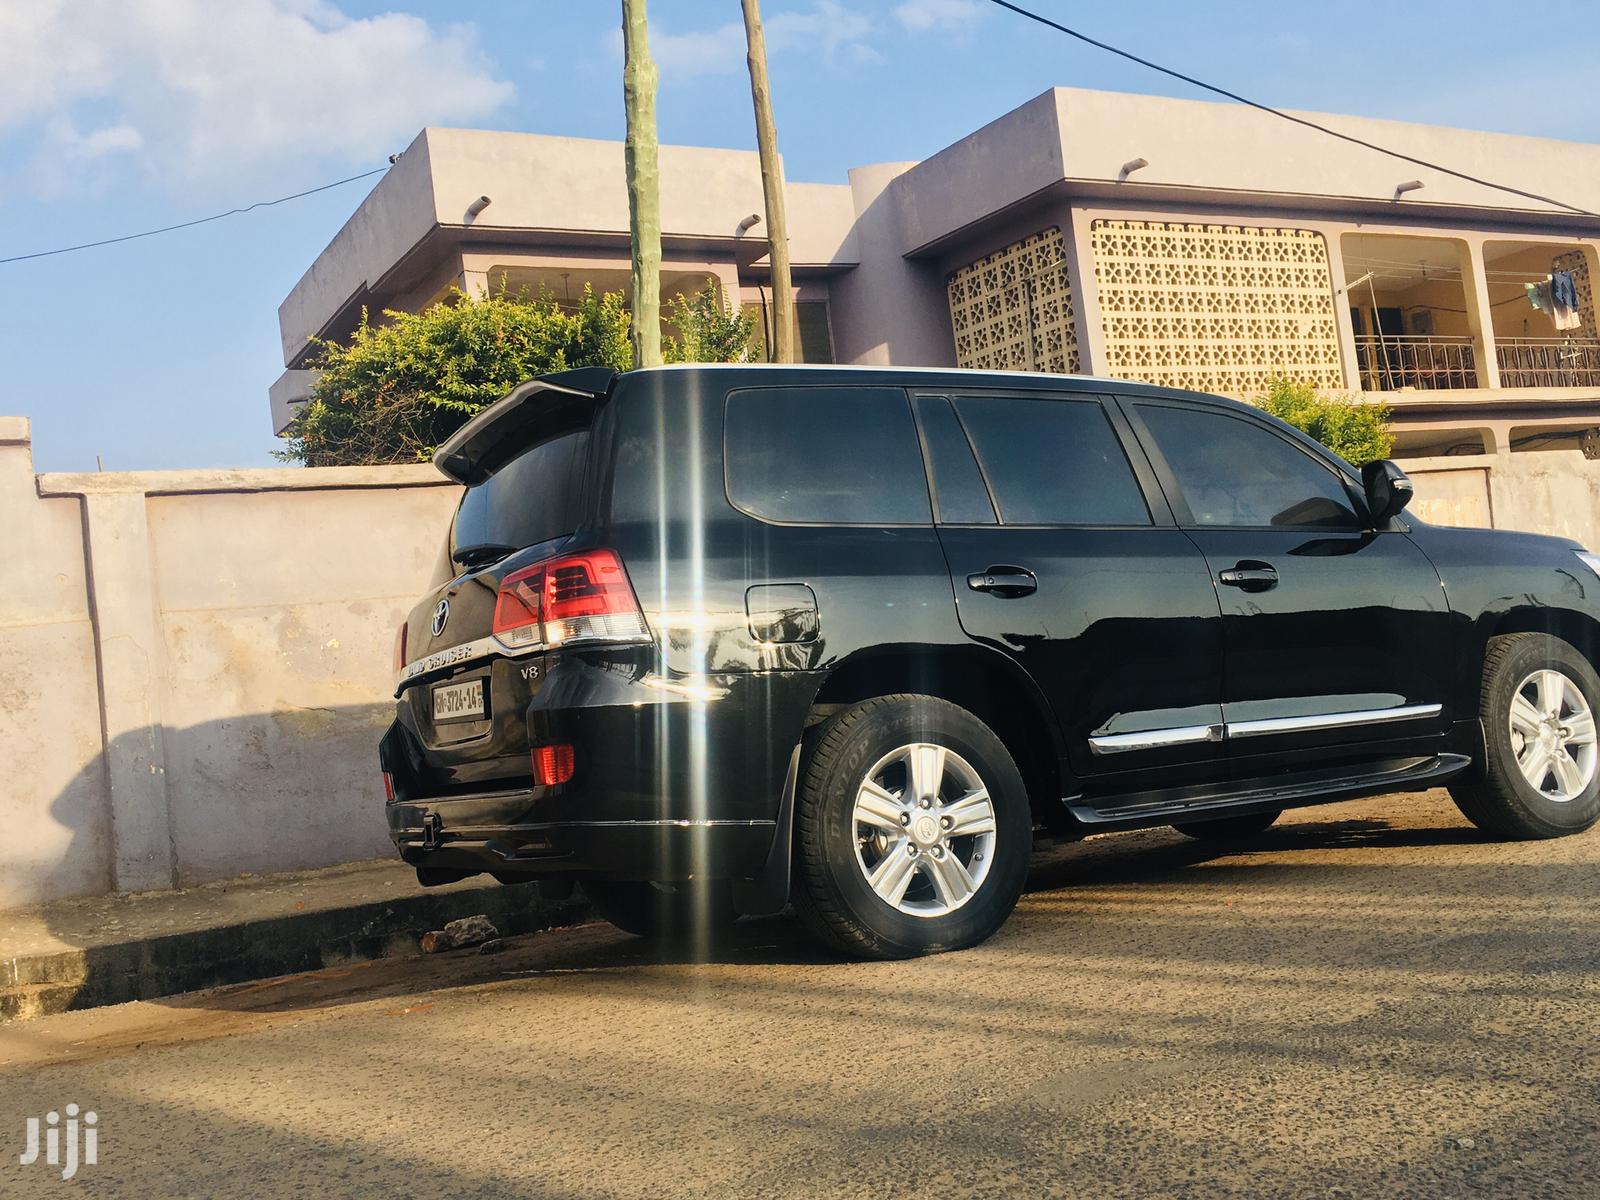 Car Specking Both Interior And Exterior(Spraying)Car Fixing | Automotive Services for sale in Odorkor, Greater Accra, Ghana